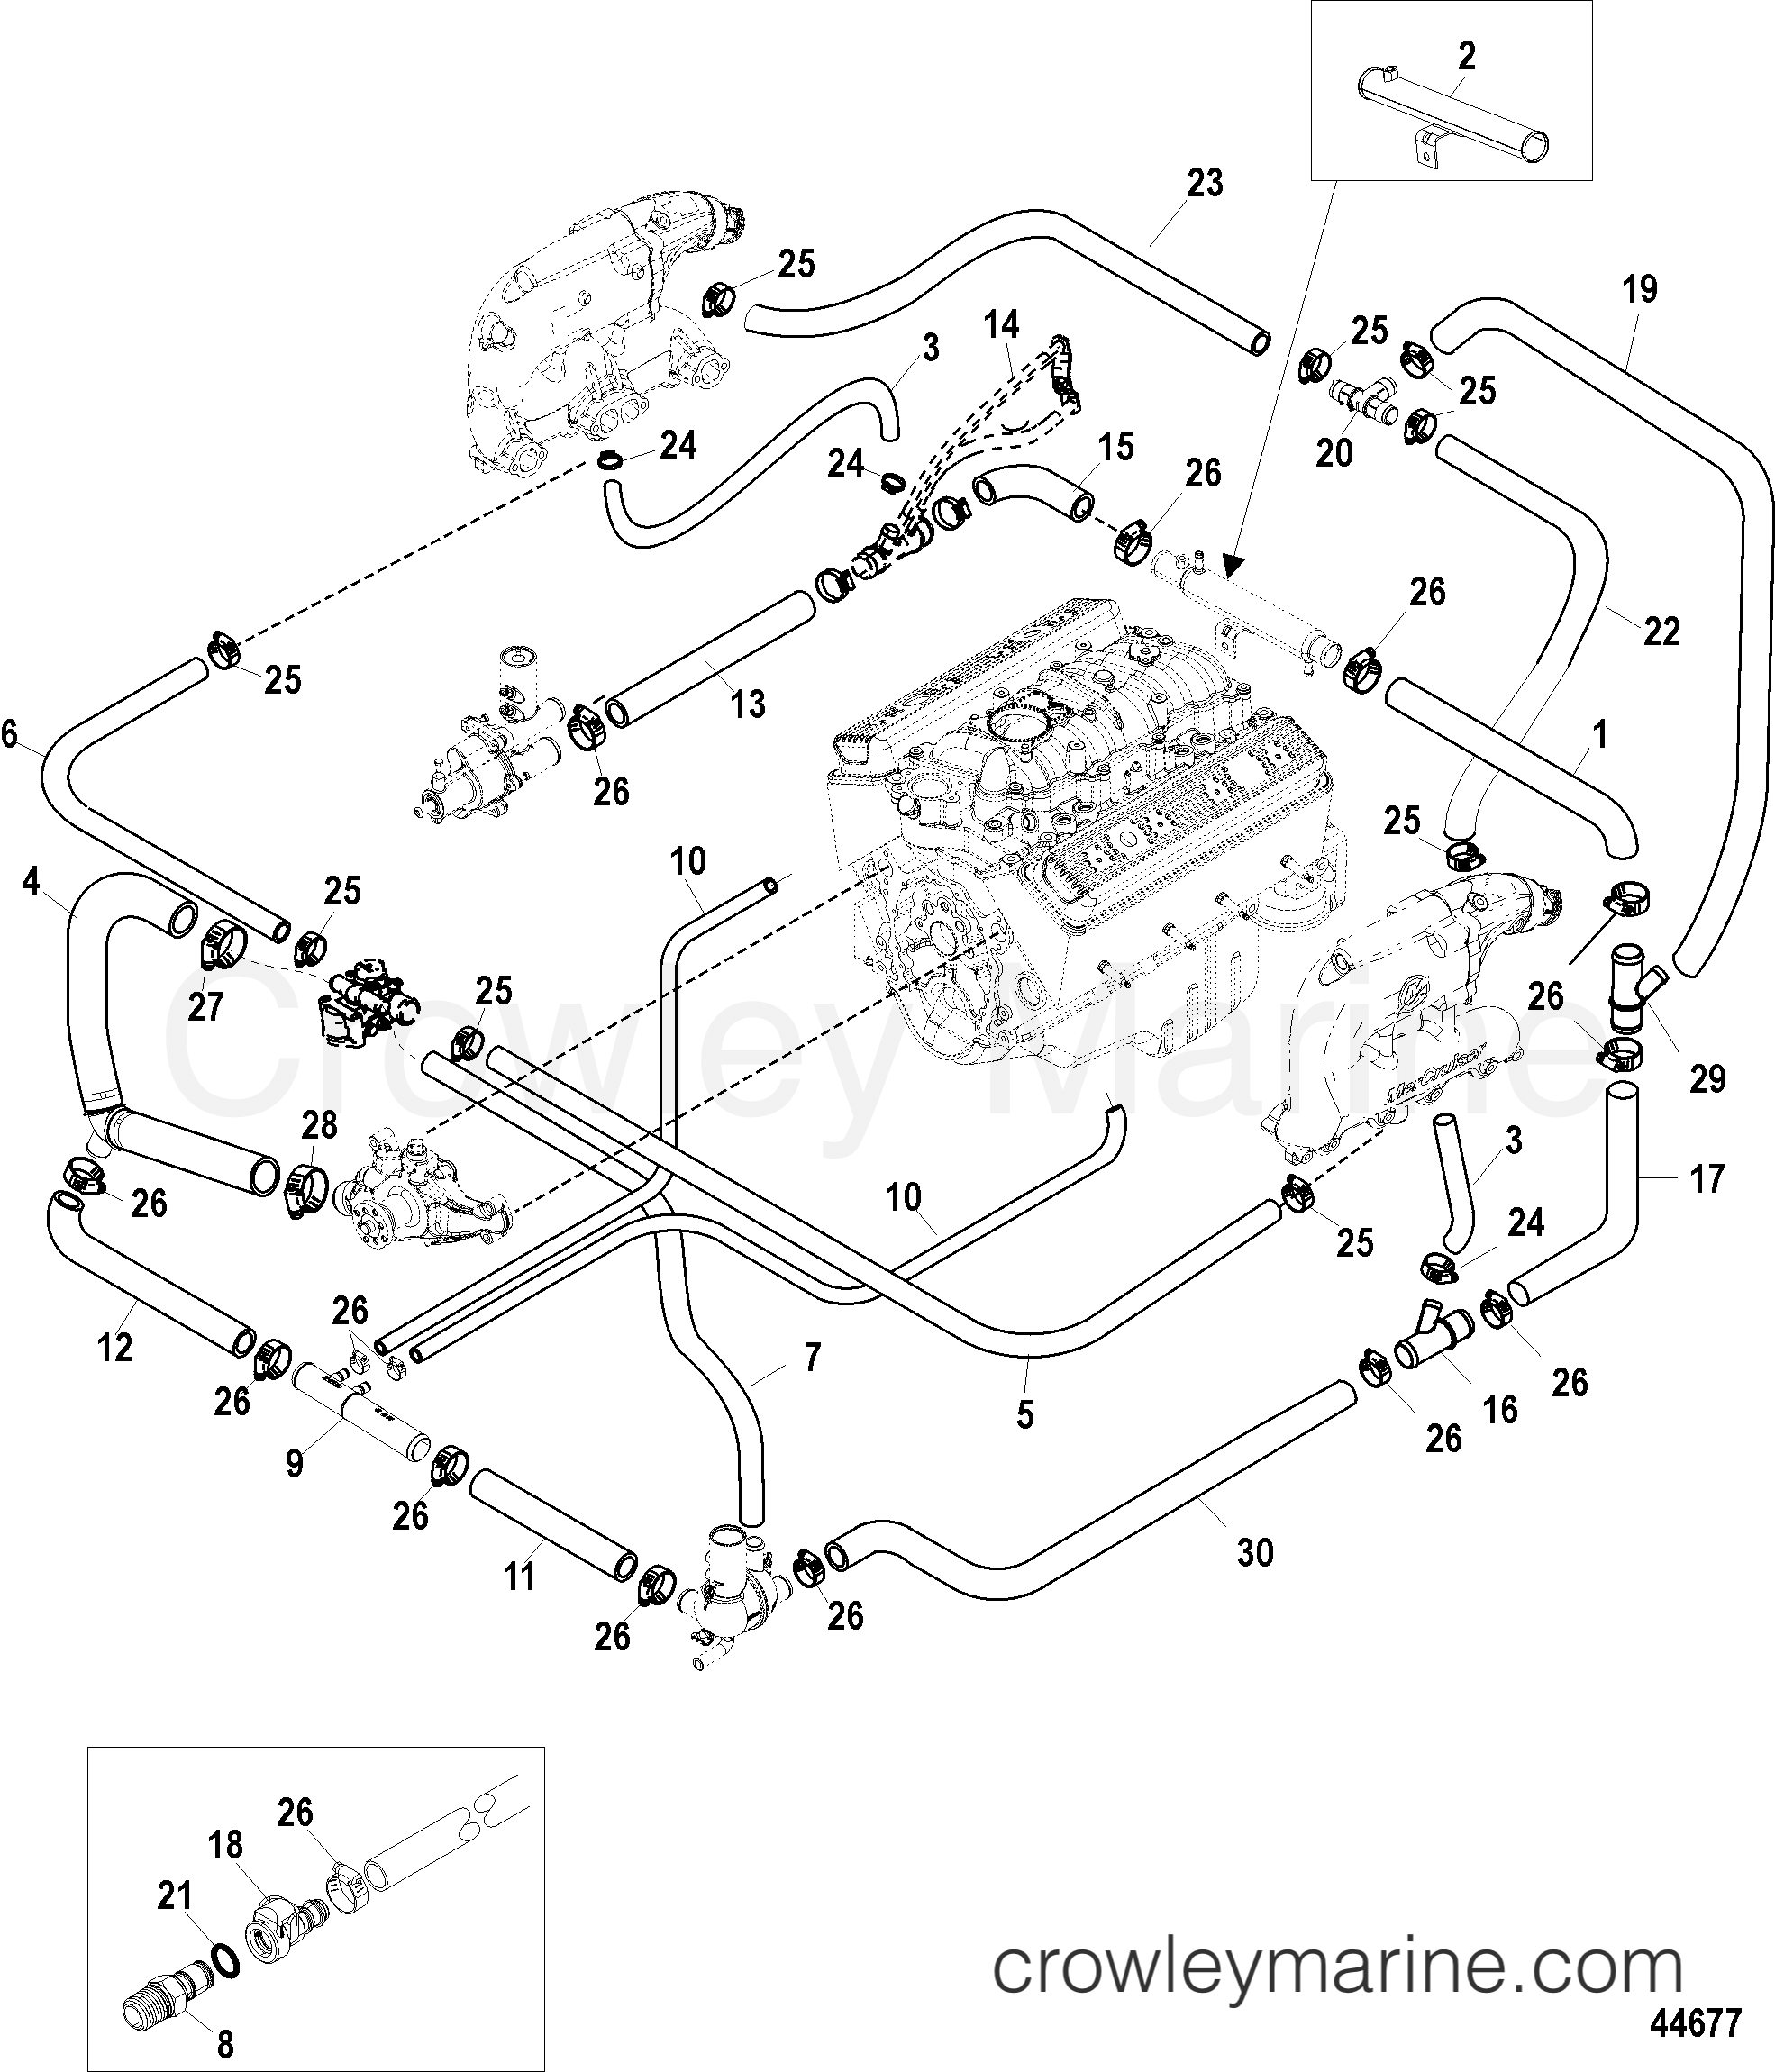 5 0 Mpi Mercruiser Cooling System Diagram